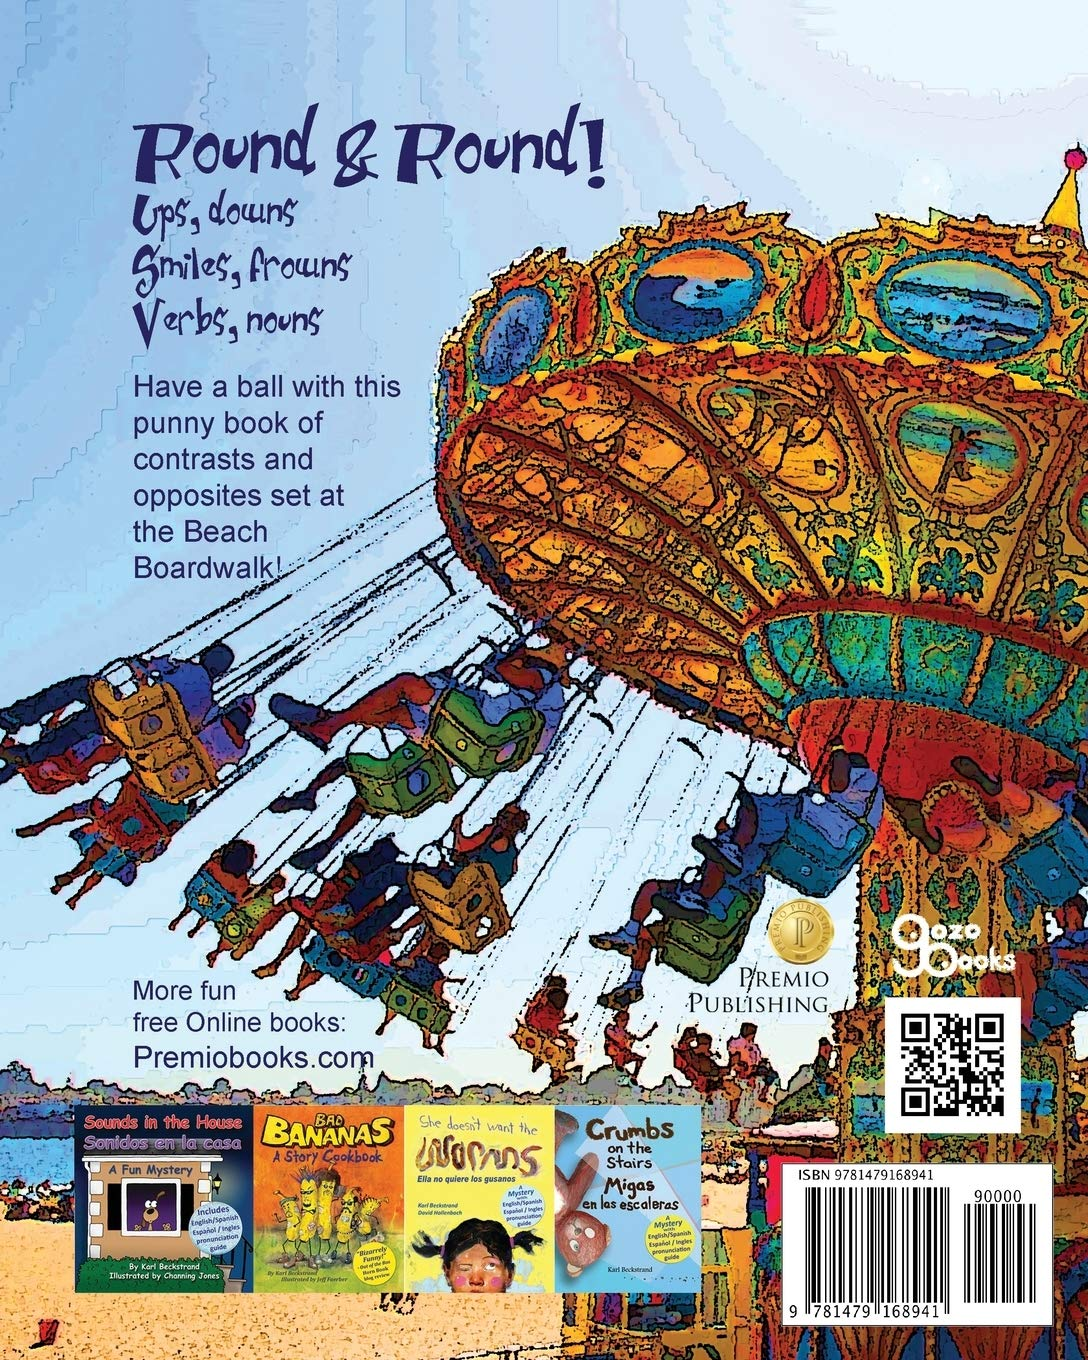 Ups & Downs at the Boardwalk: A Picture Book of Opposites: 1 Concepts for Kids: Amazon.es: Beckstrand, Karl: Libros en idiomas extranjeros